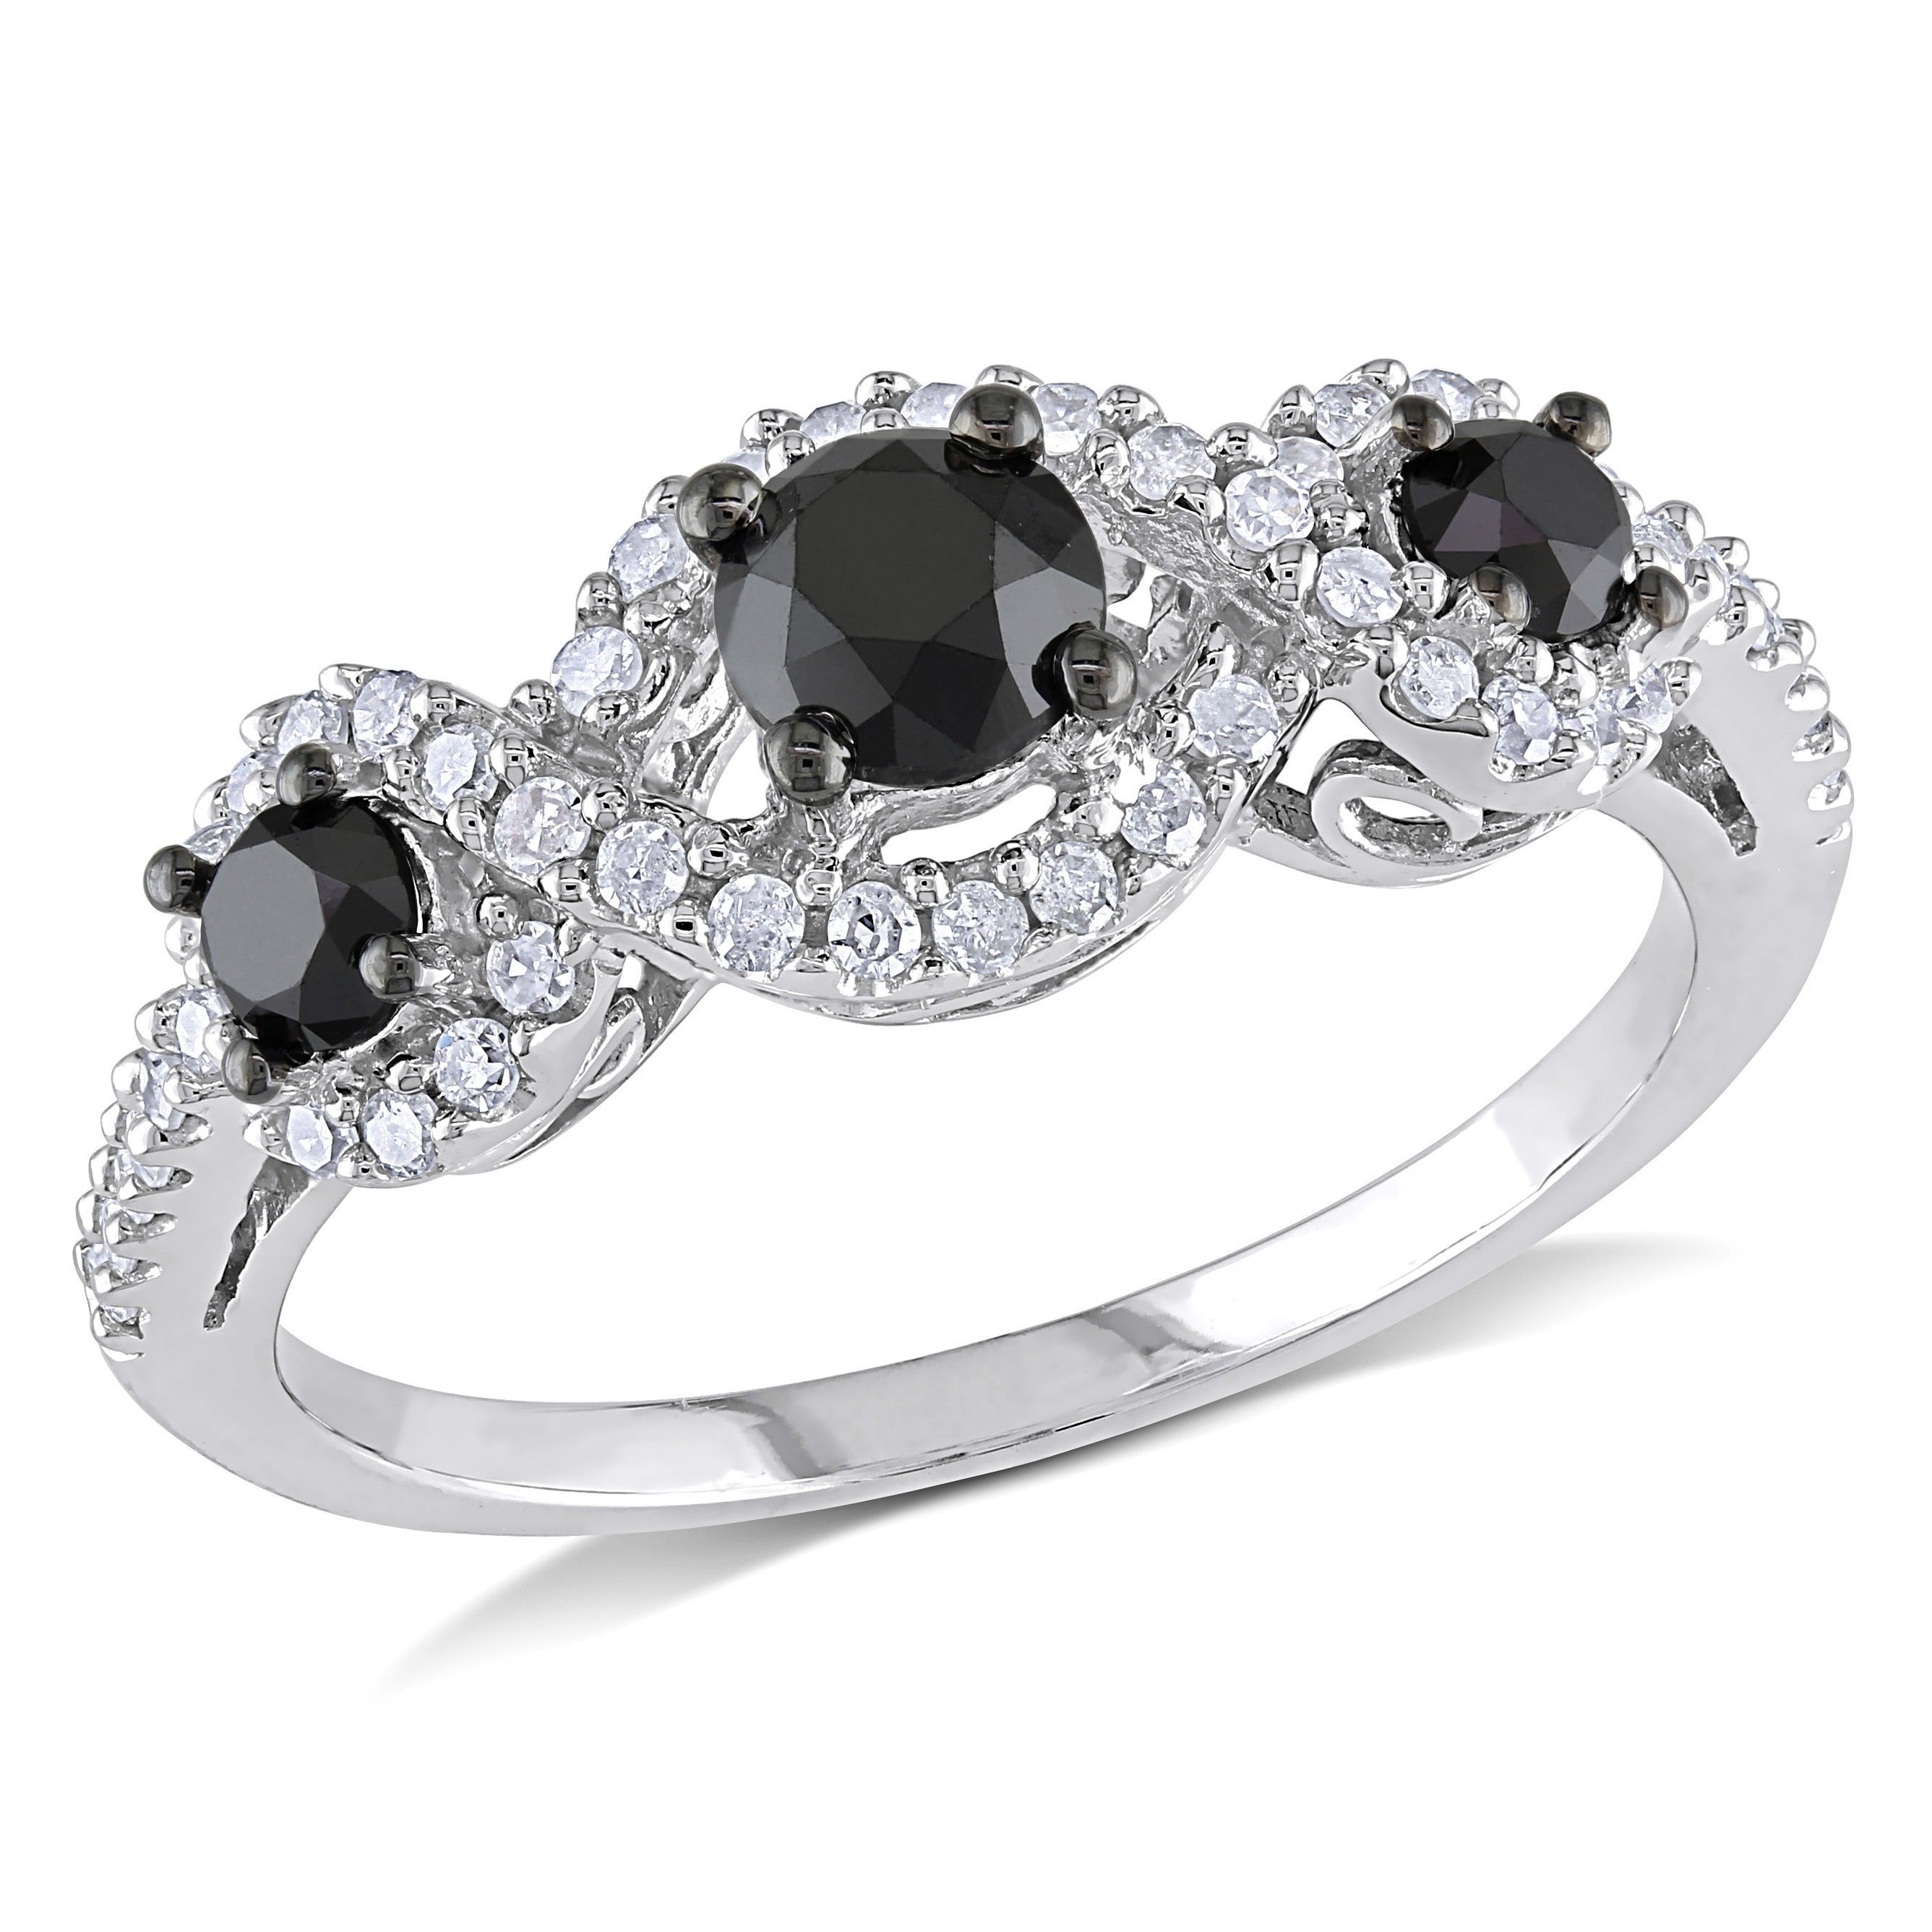 shoulders women diamonds oval central either setting for ring three engagement claw rings glamorous a side white and brilliant with round the gold all stone an princess in channel on diamond cut